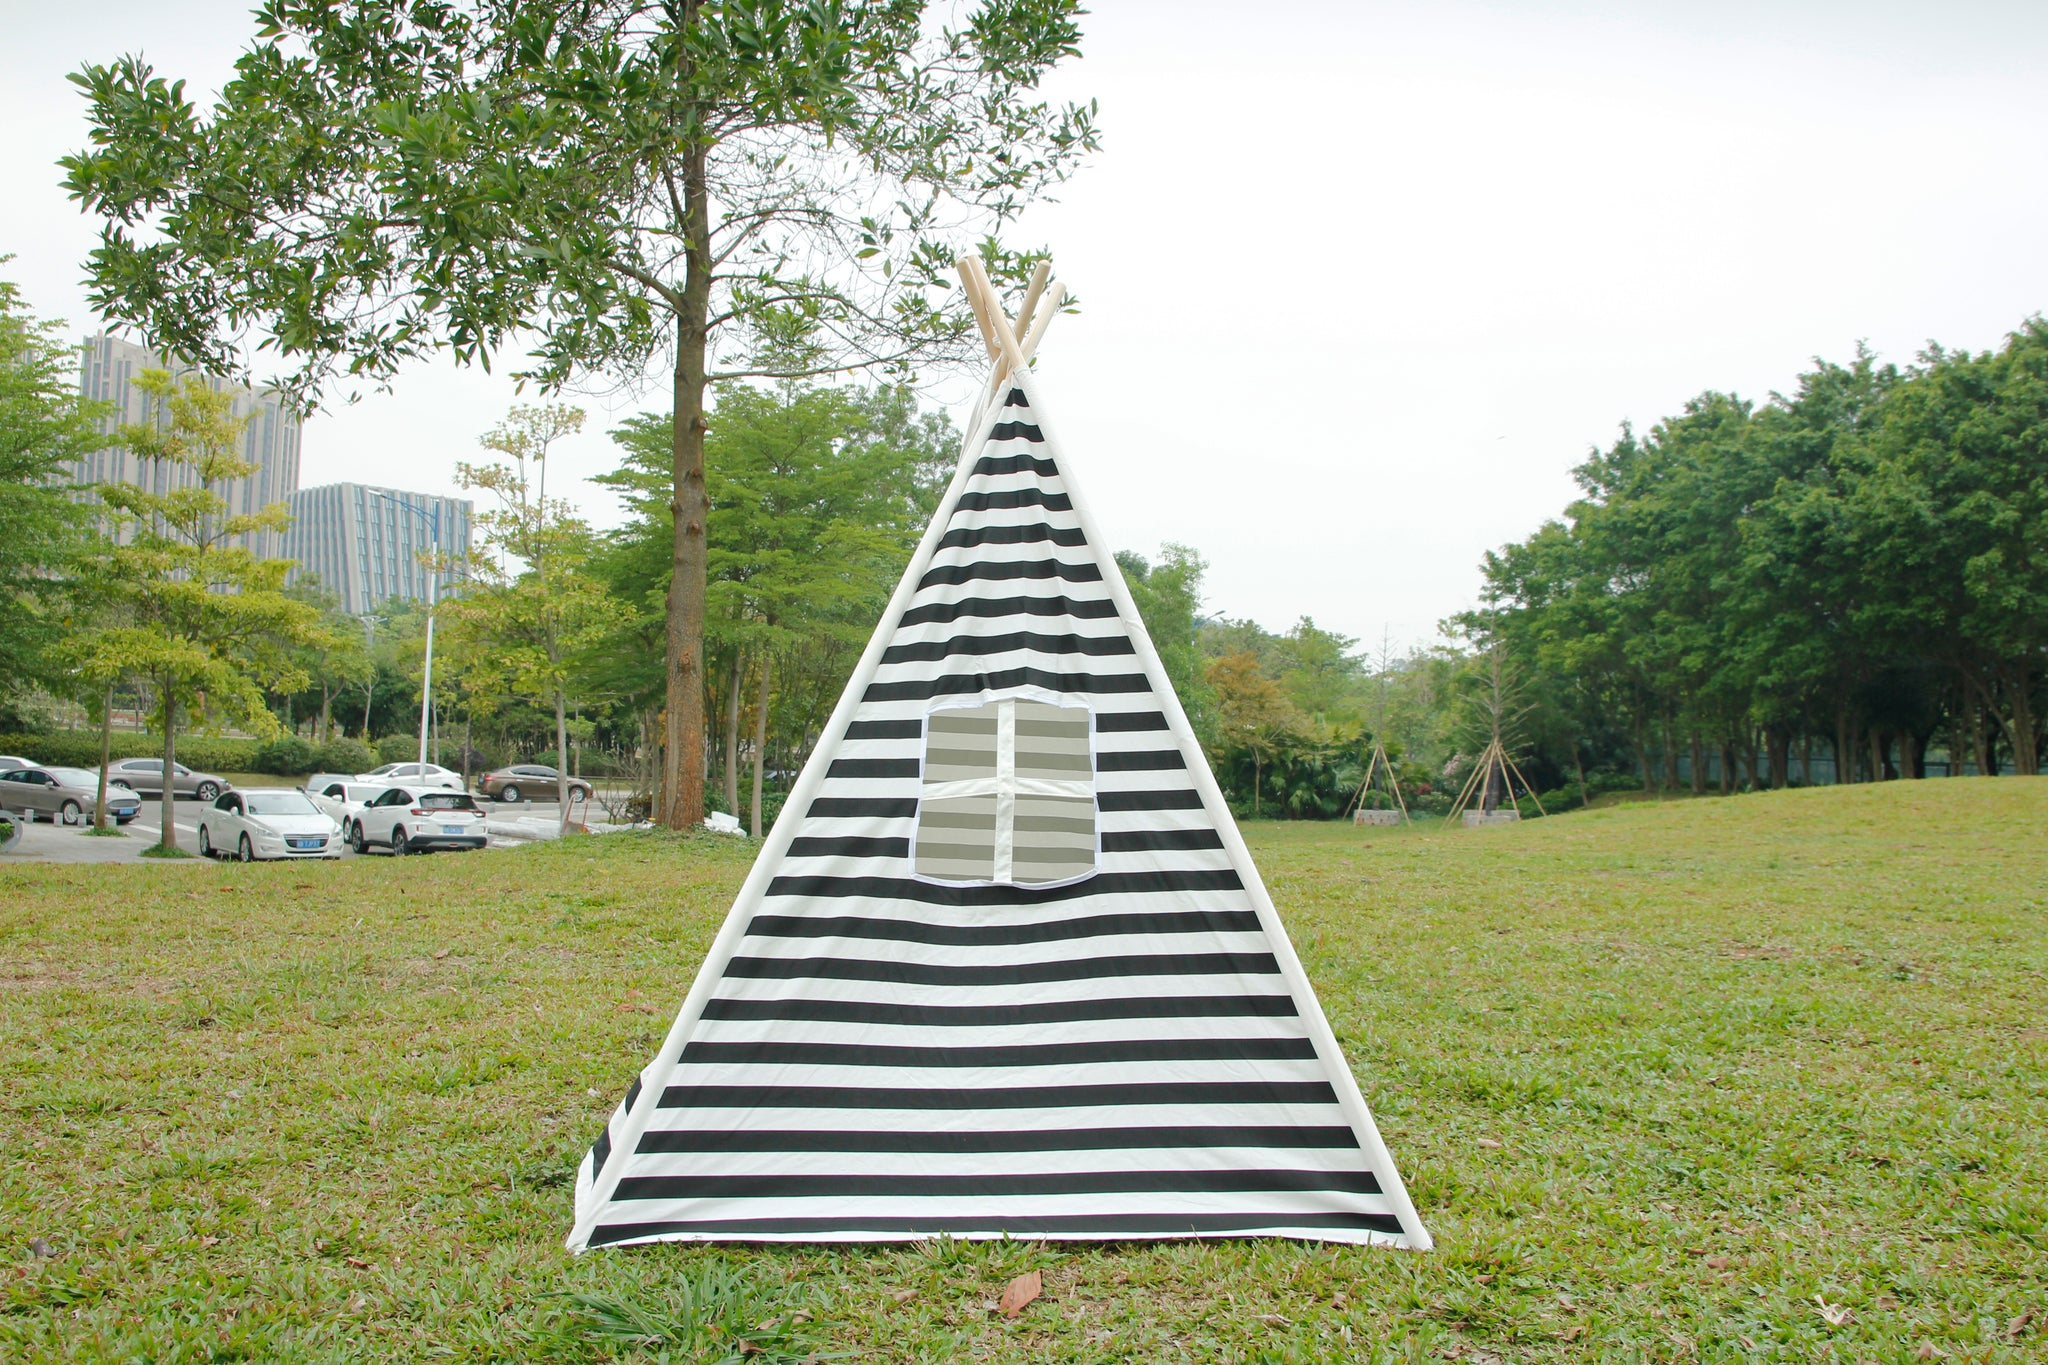 Canvas Teepee Tent For Kids Tipi Tent Teepee Tent 2 Child